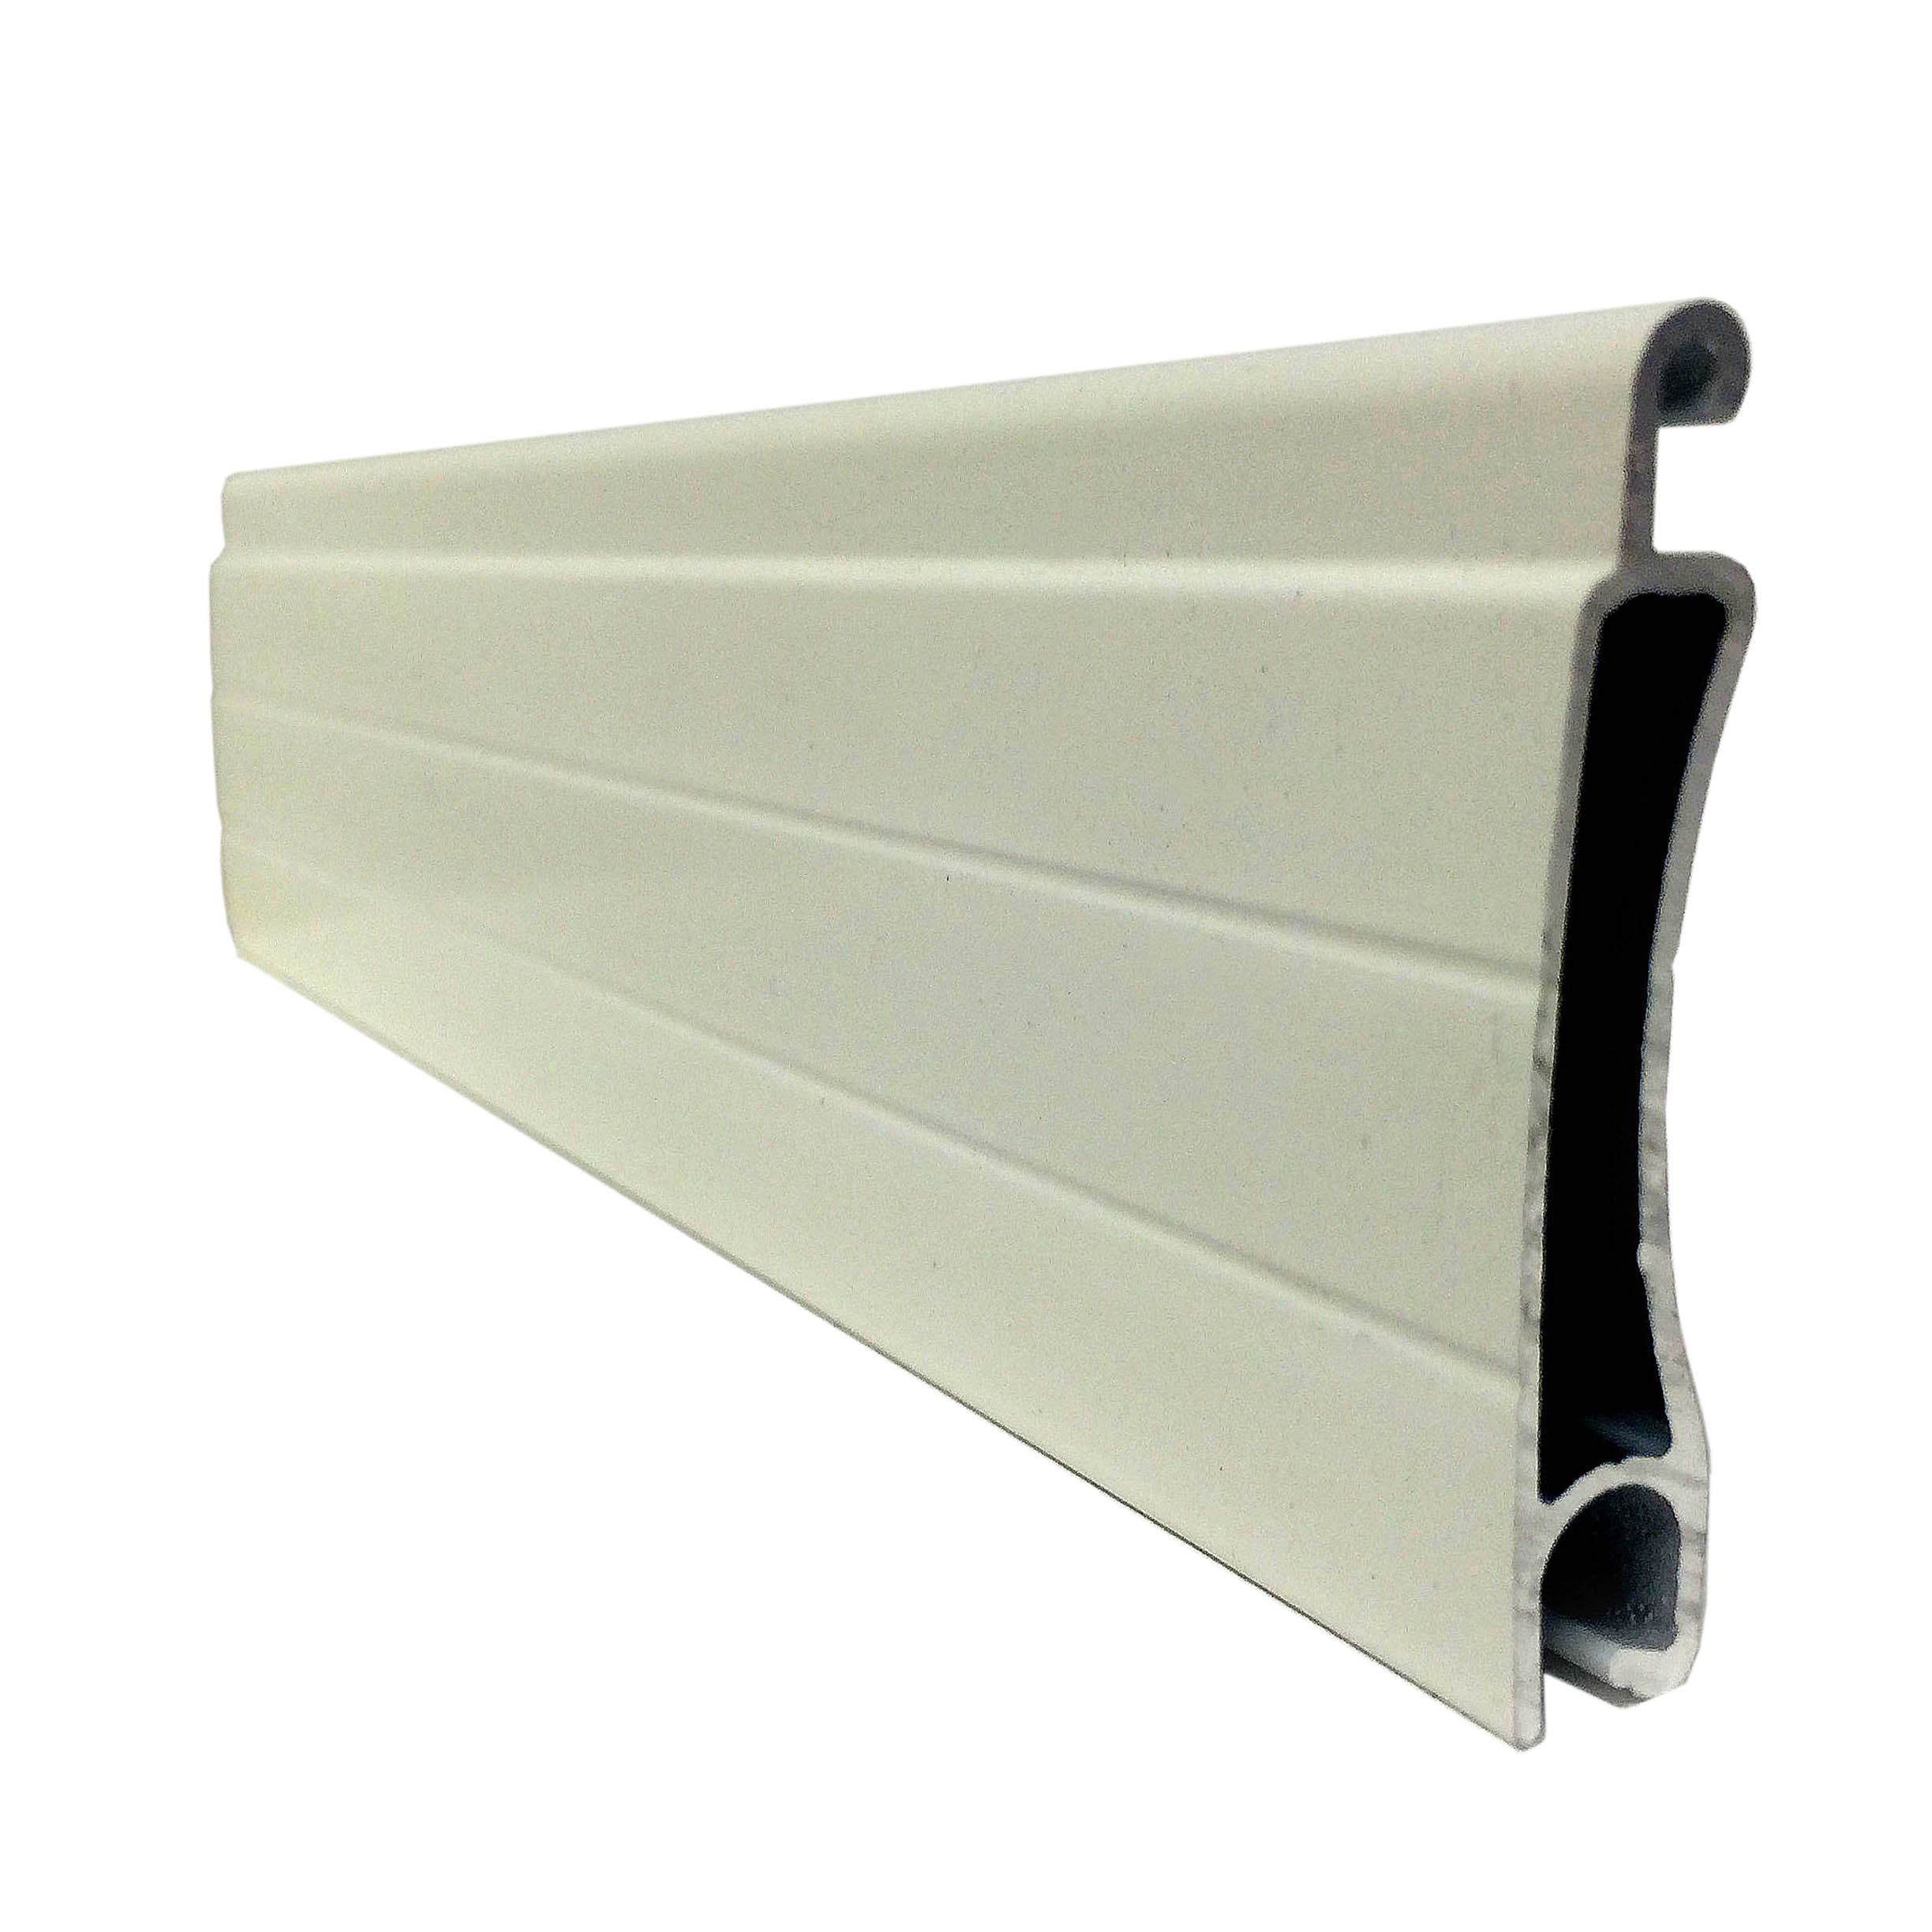 Aluroll-e37-security-shutter-slat-profile